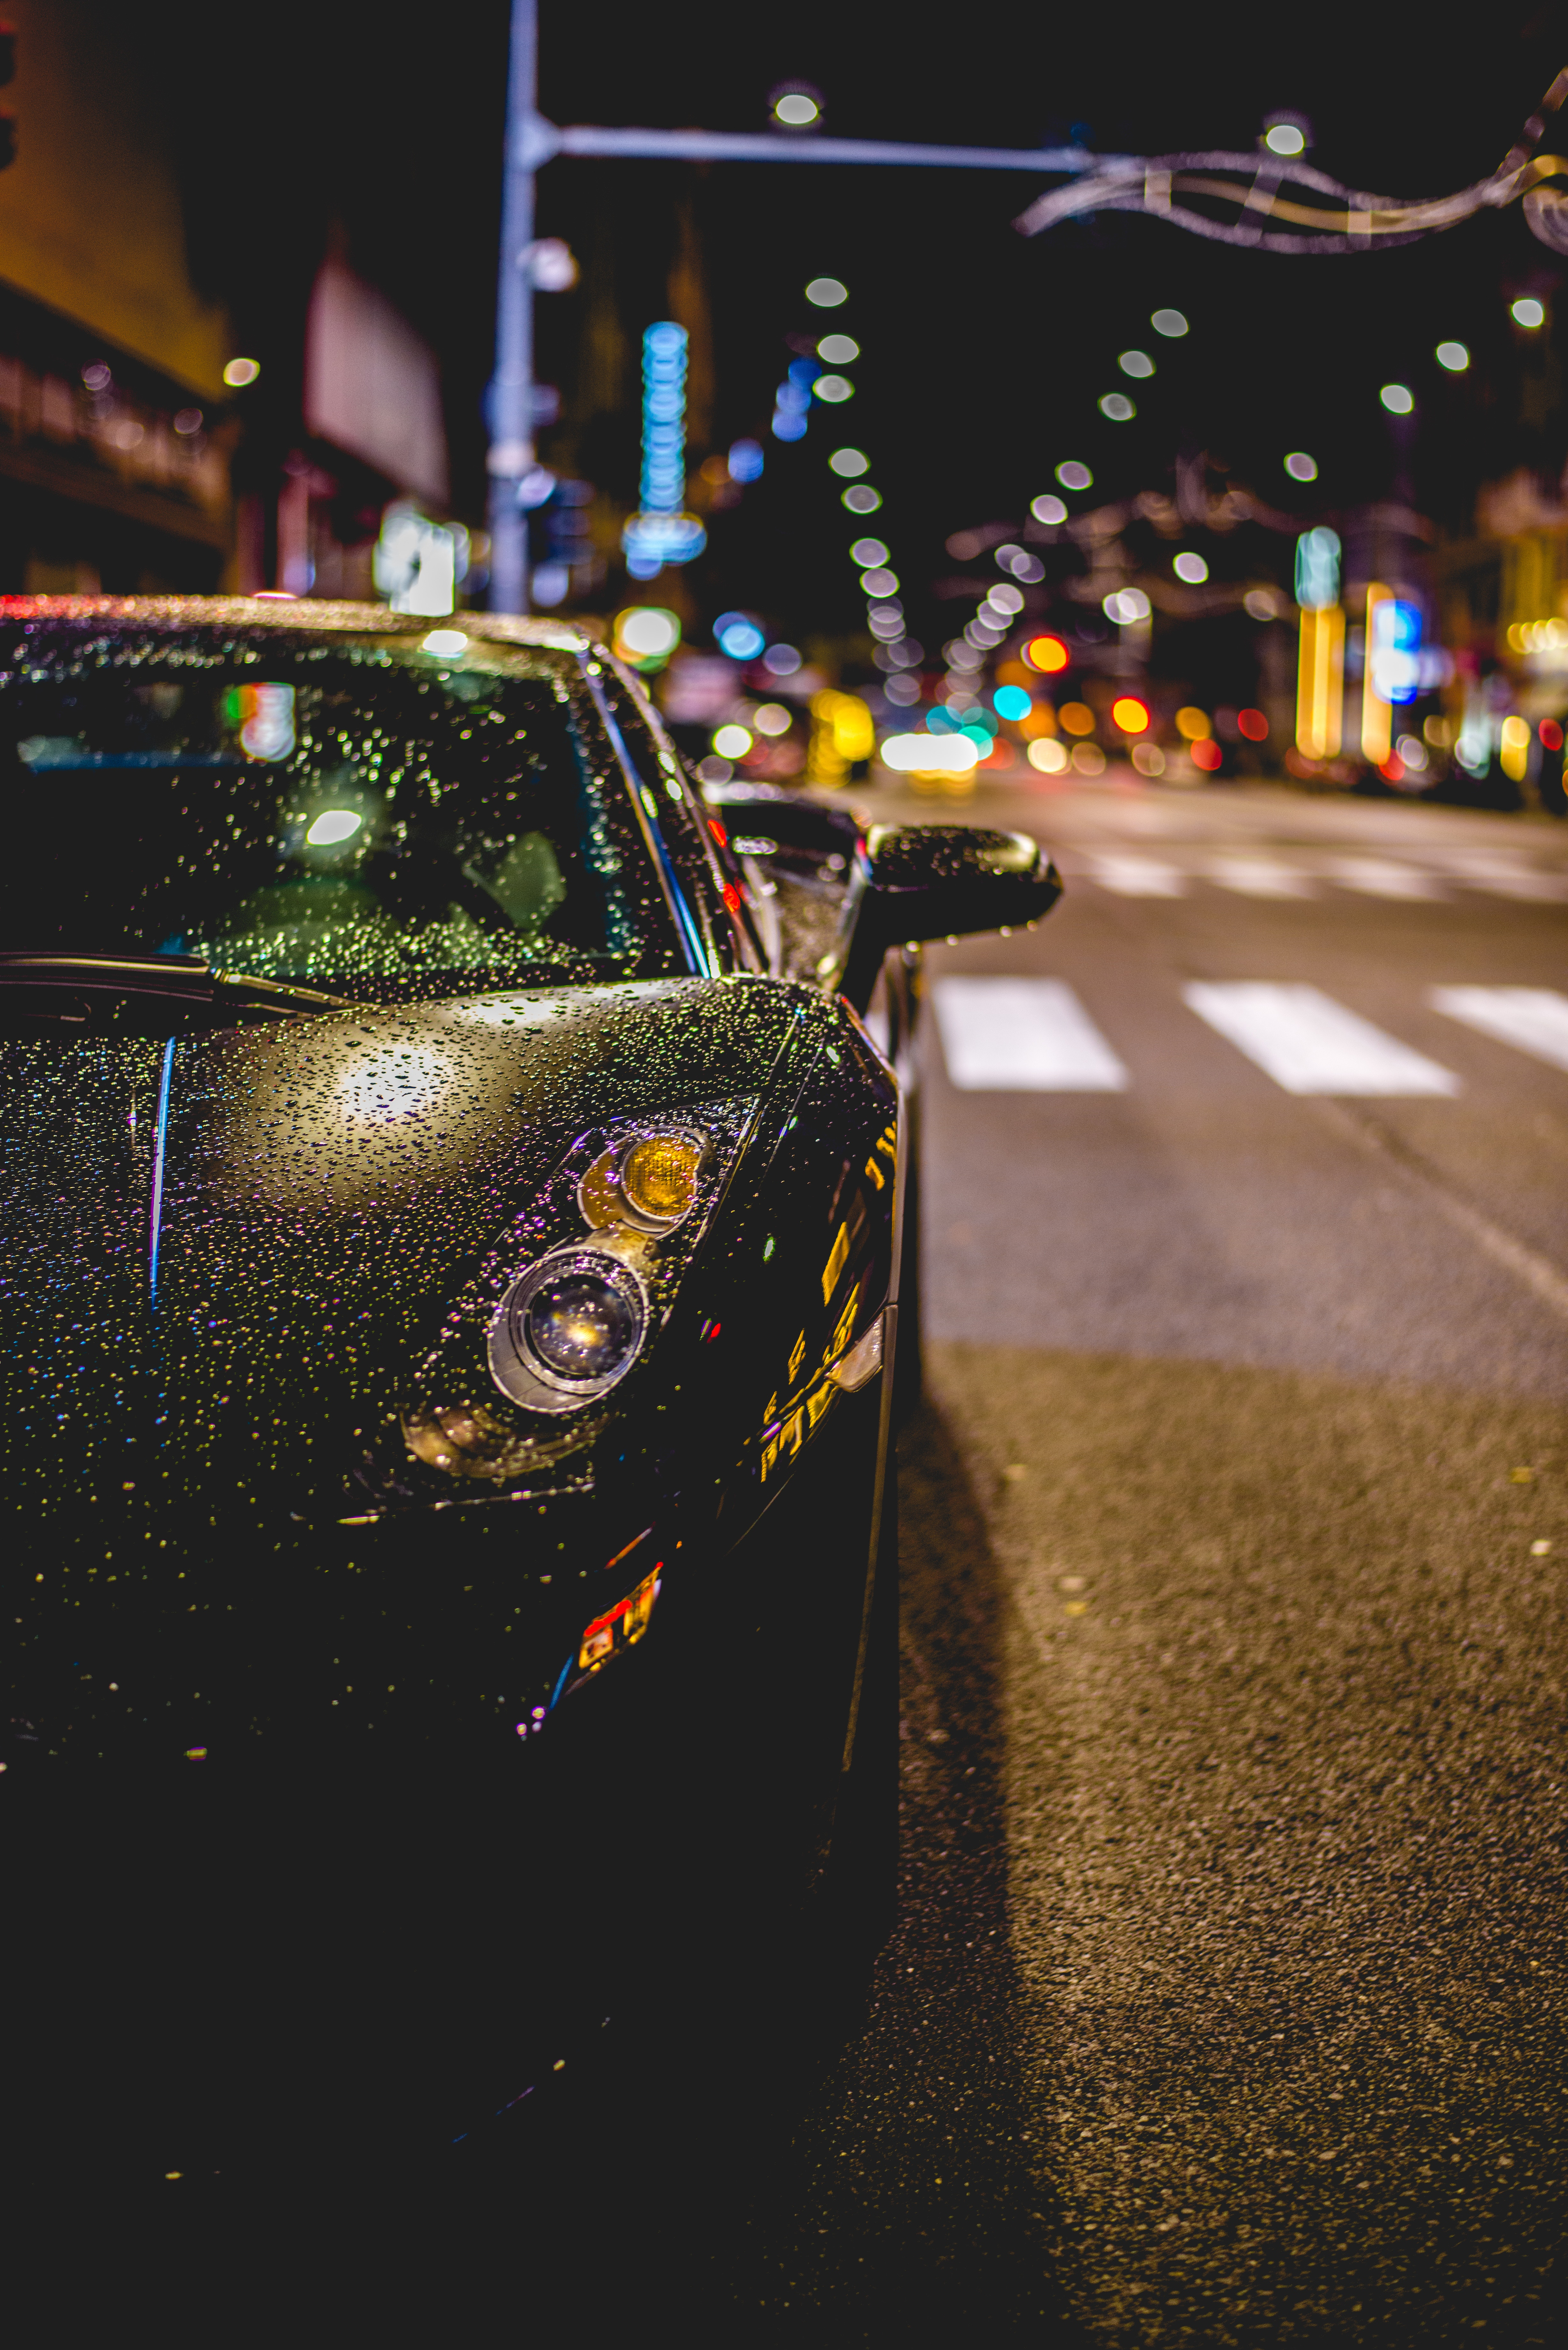 117165 download wallpaper Front View, Auto, Rain, Drops, Cars screensavers and pictures for free